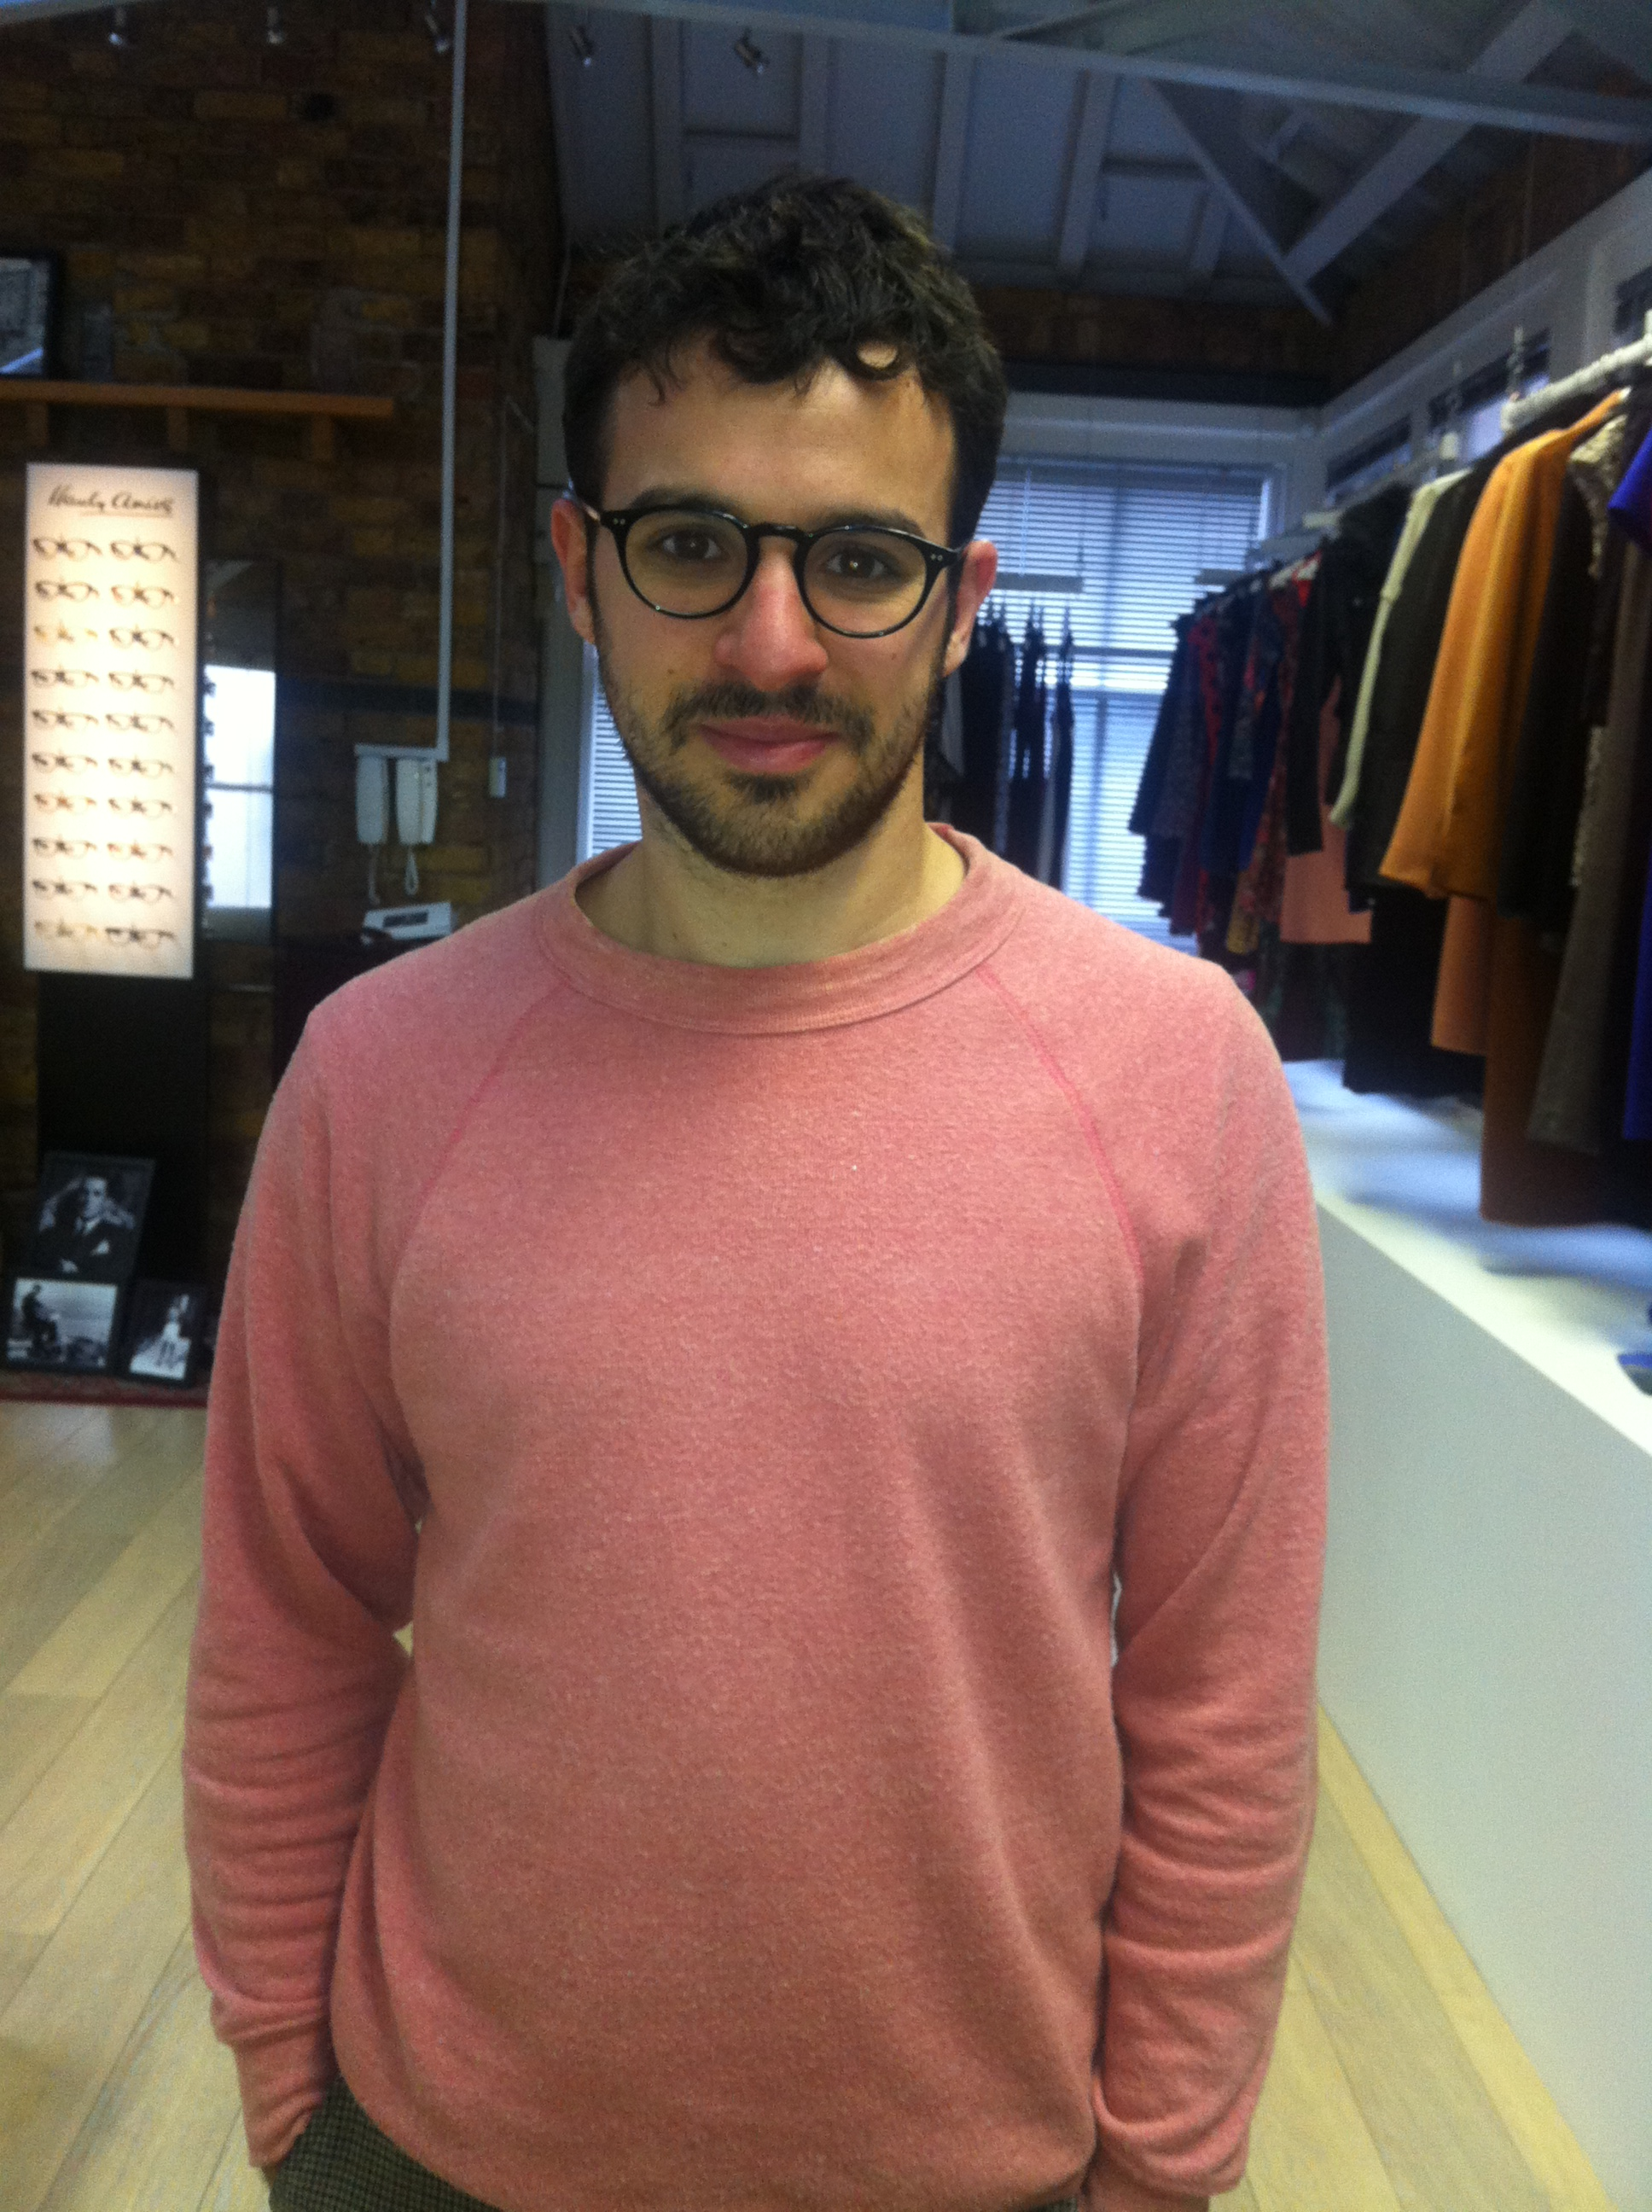 simon bird qcsimon bird nationality, simon bird height, simon bird instagram, simon bird and lisa owens, simon bird, simon bird interview, simon bird inbetweeners, simon bird stand up, simon bird wife, simon bird benidorm, simon bird twitter, simon bird net worth, simon bird chiropractor, simon bird jewish, simon bird qc, simon bird imdb, simon bird mirror, simon bird chiropractor reading, simon bird wedding, simon bird bristol port company